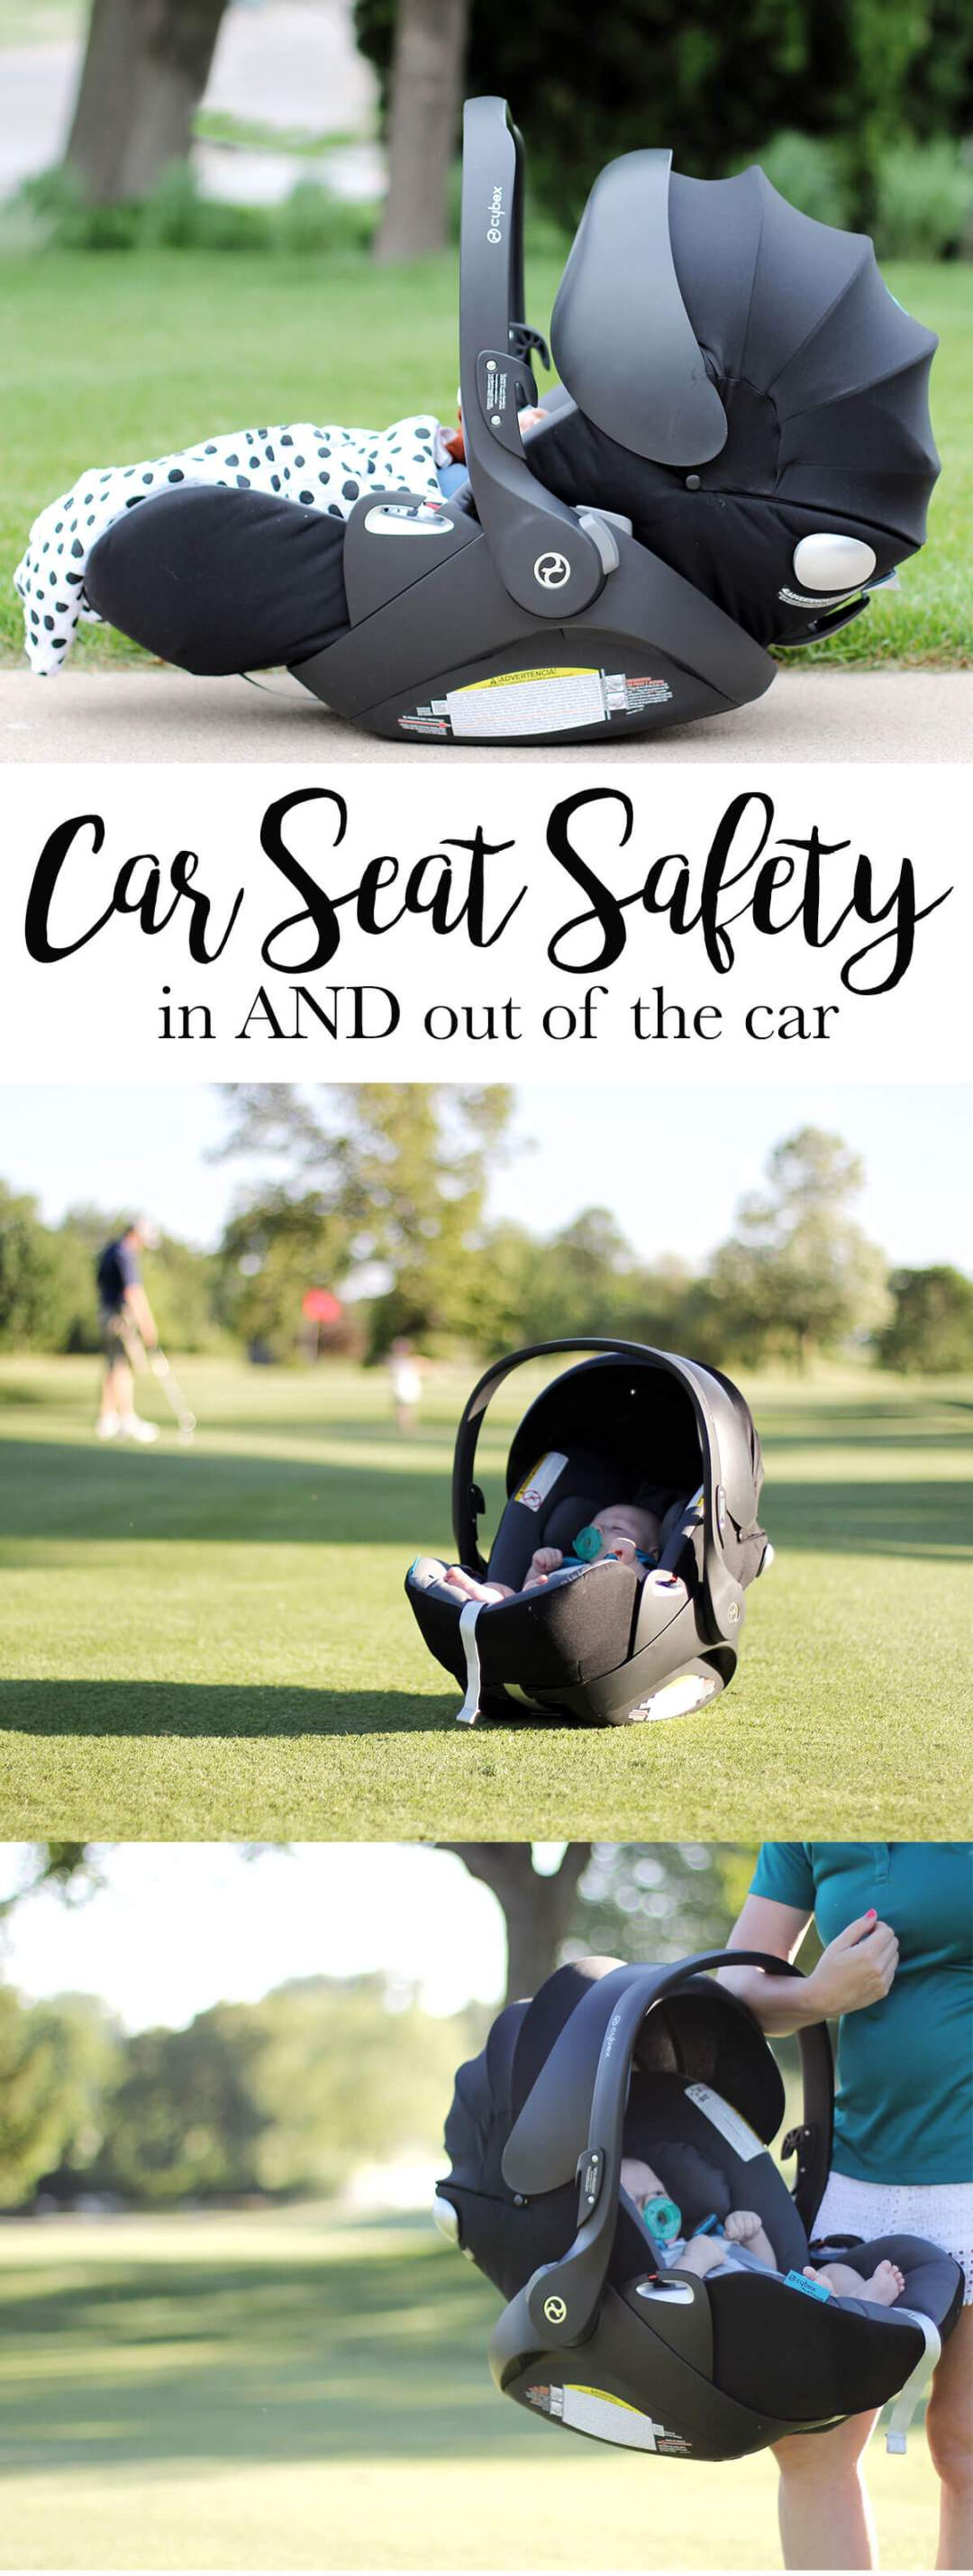 Carseat Safety In AND Out of the Car | Shopaholic & a Baby Blog